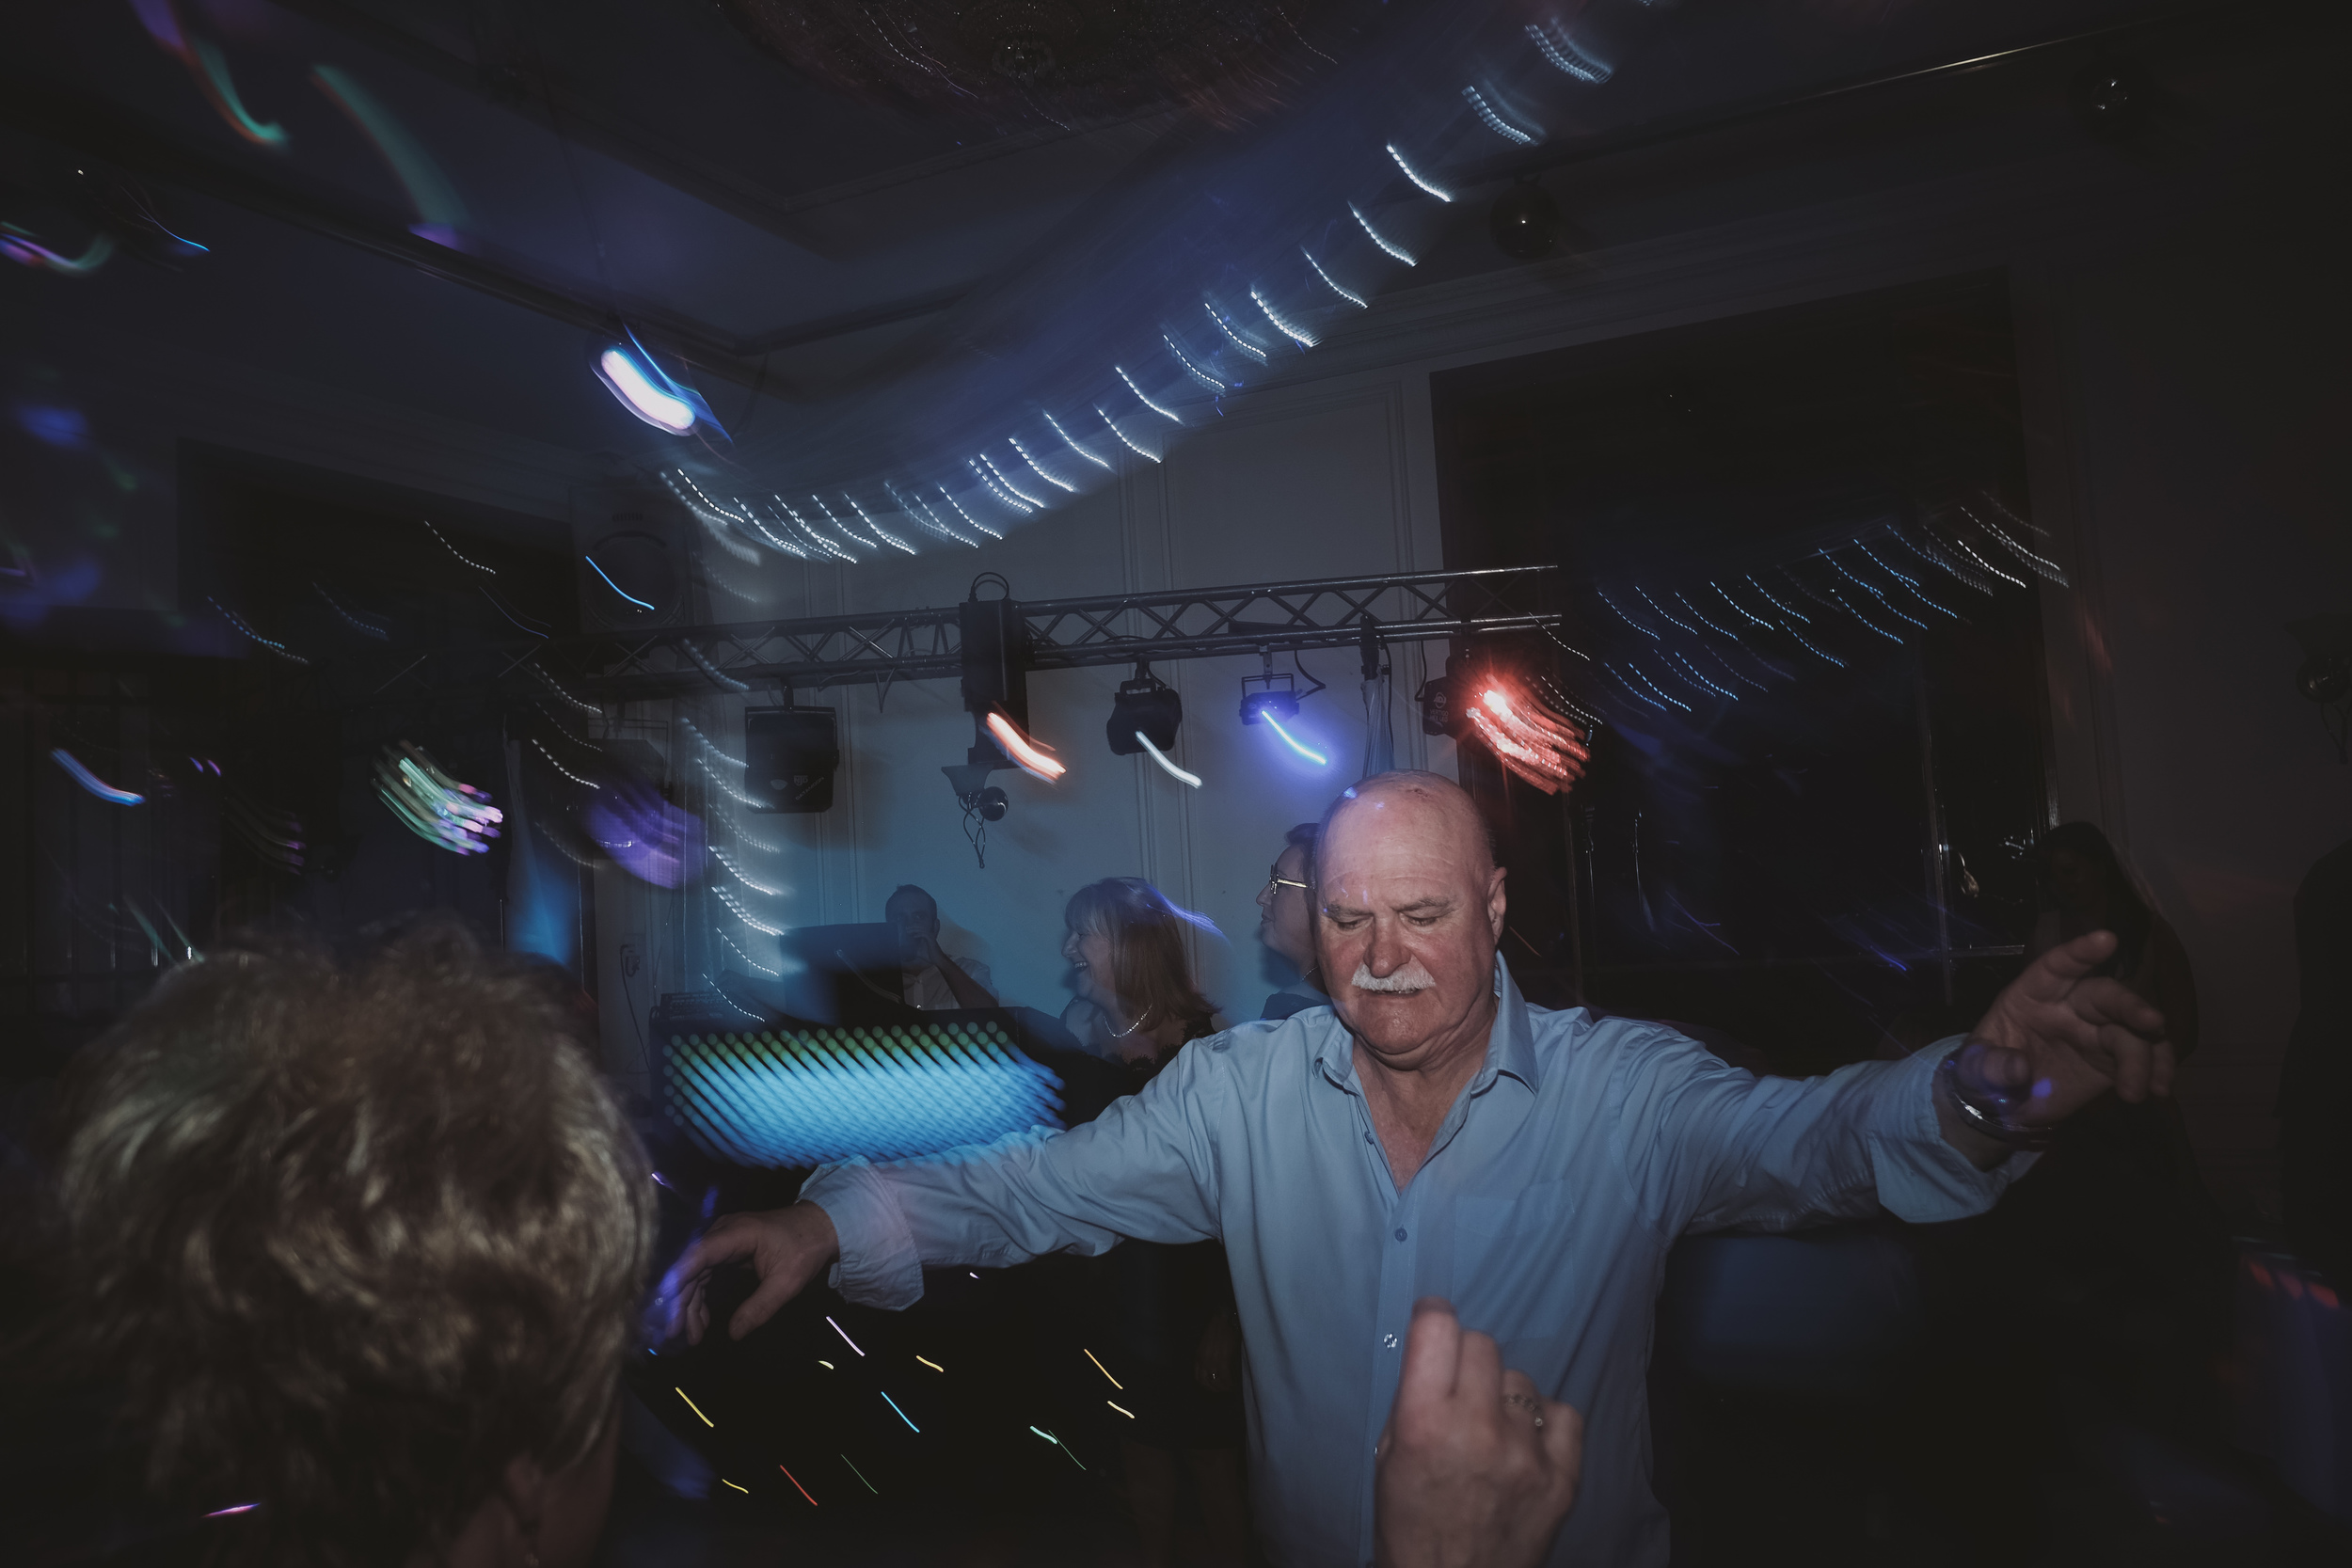 Newcastle Wedding Photographer // Older guest on dancefloor